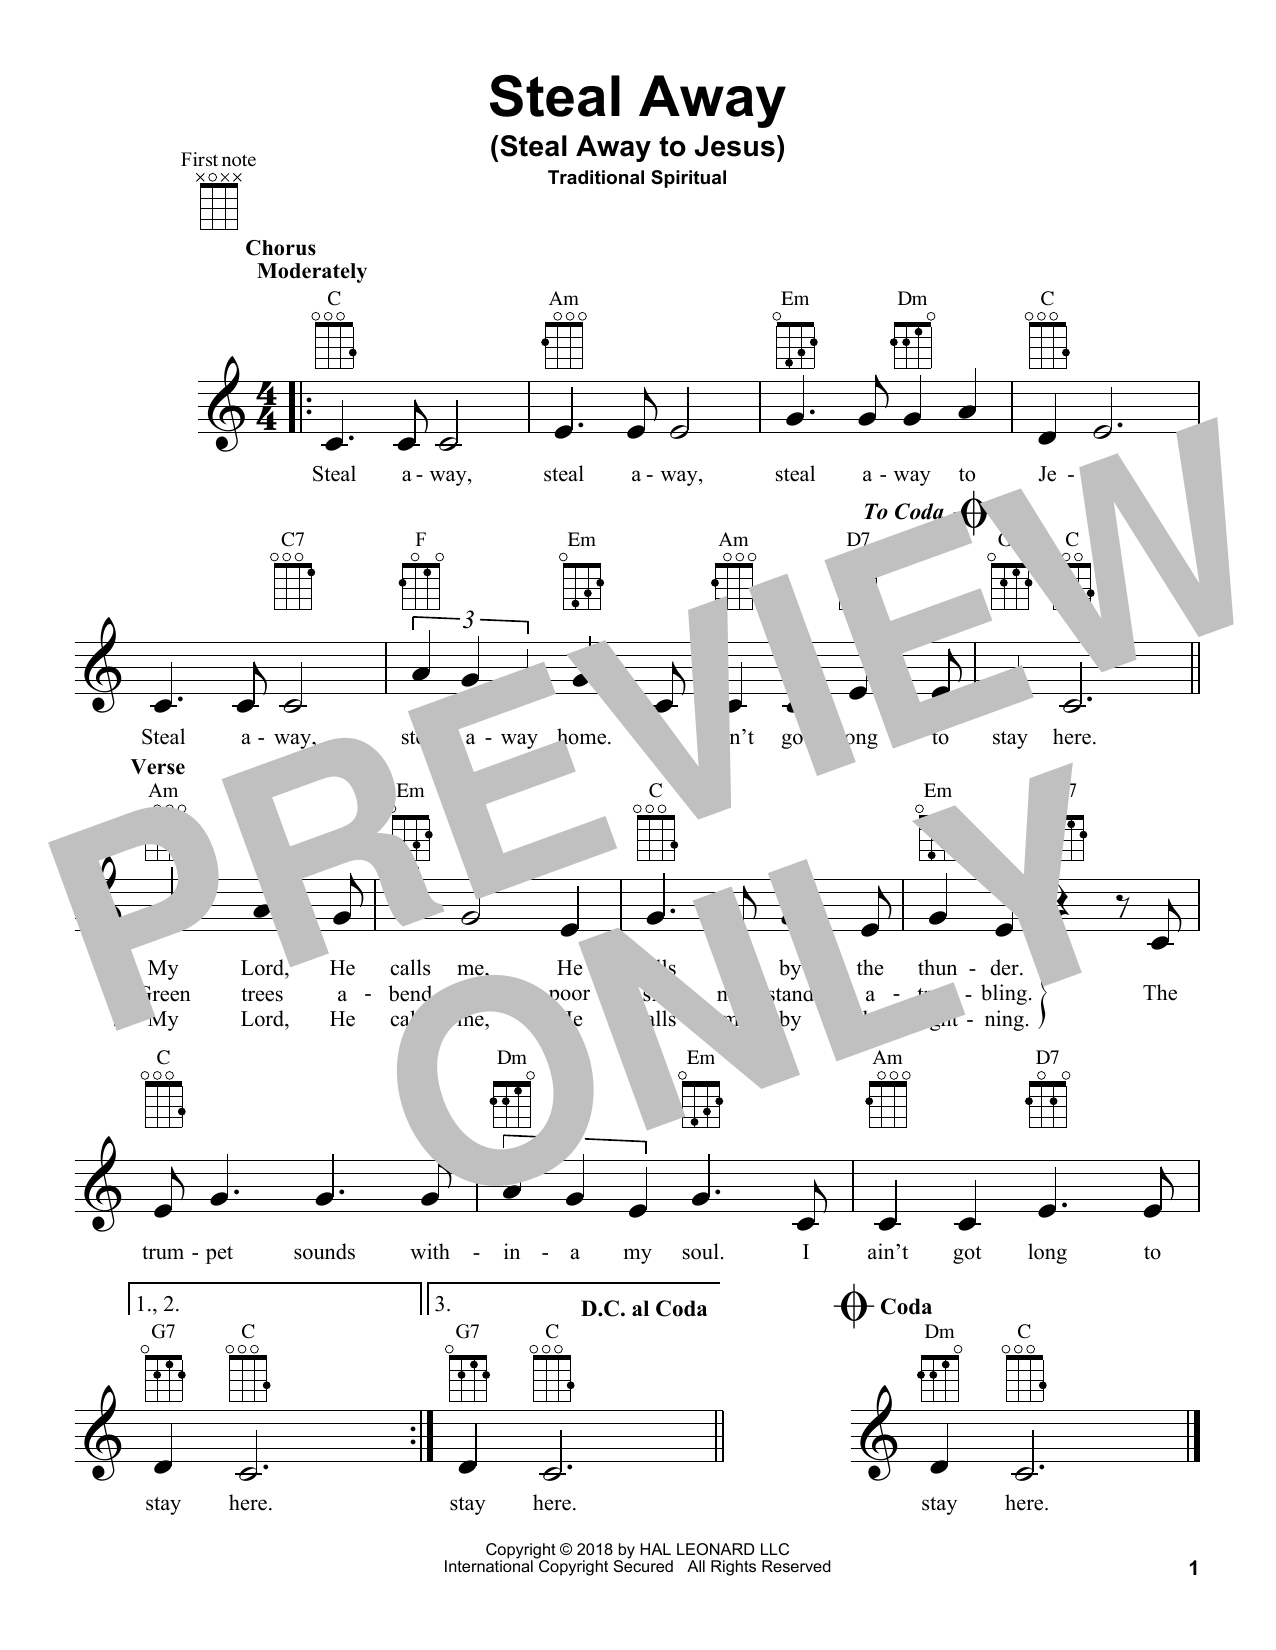 African-American Spiritual Steal Away (Steal Away To Jesus) sheet music notes and chords. Download Printable PDF.